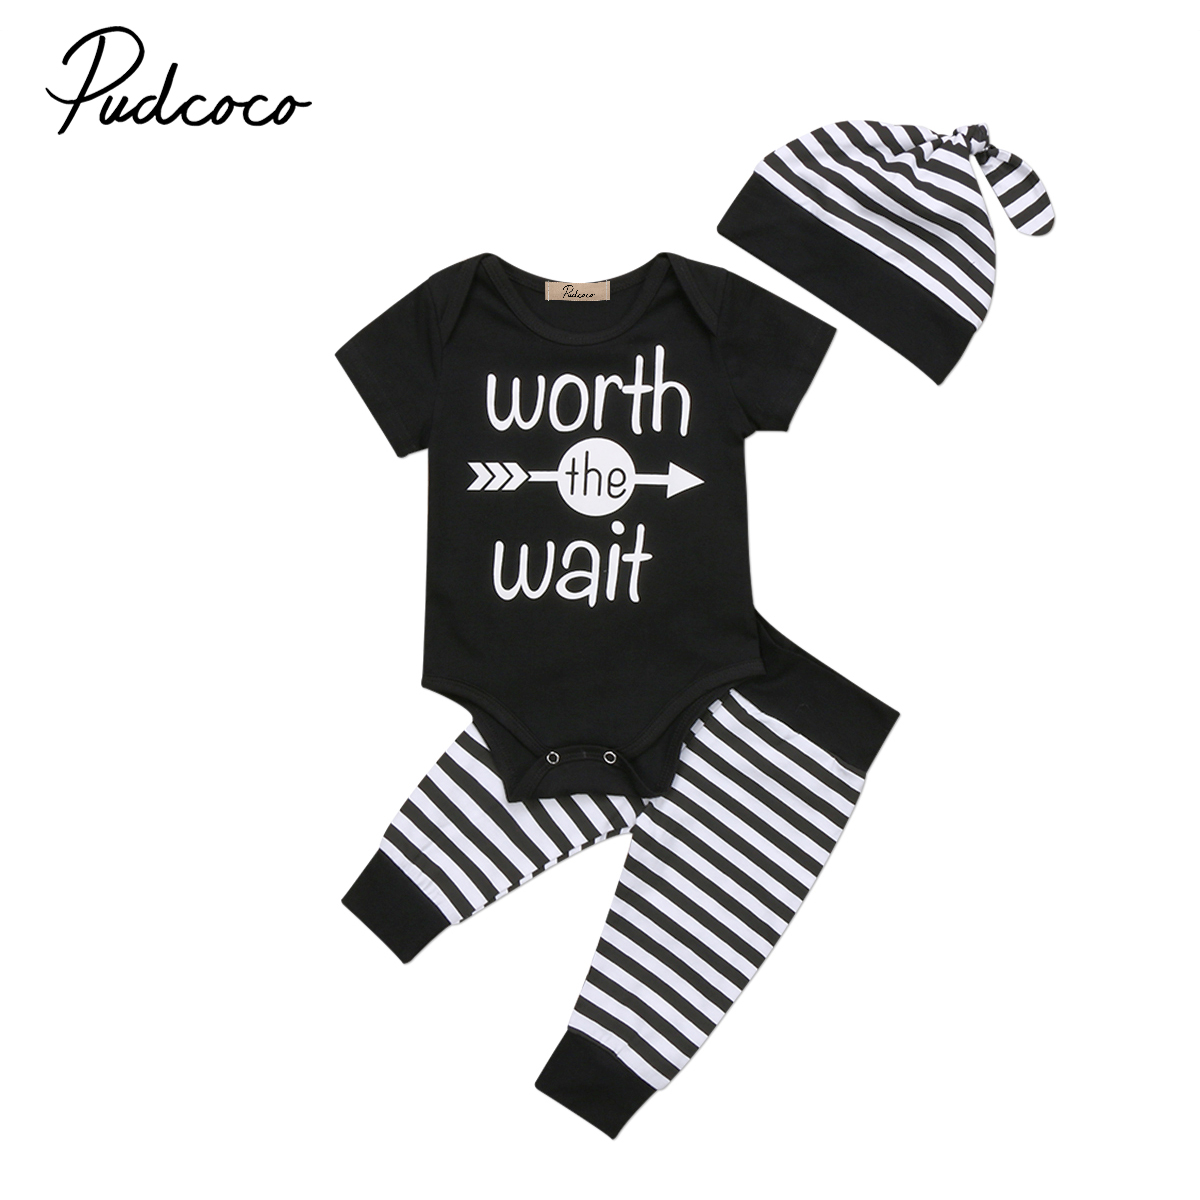 3Pcs Toddler Baby Boys Worth to wait Clothes set 2017 Newborn Short Sleeve Bodysuit Romper Pants Outfits Set Clothes